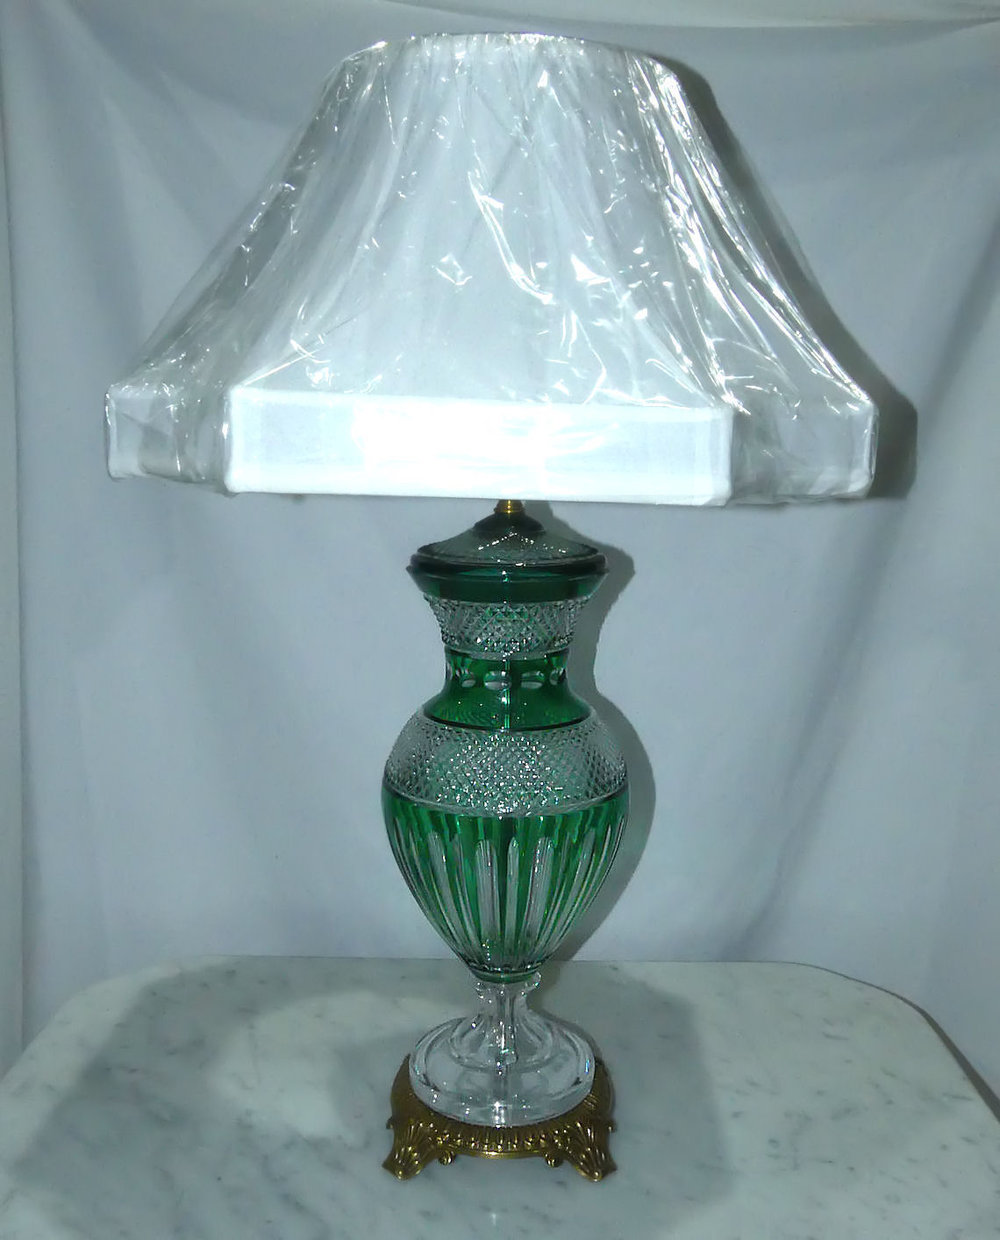 Emerald Green Hand Cut Hungarian Crystal Lamp  $895 (free domestic shipping)